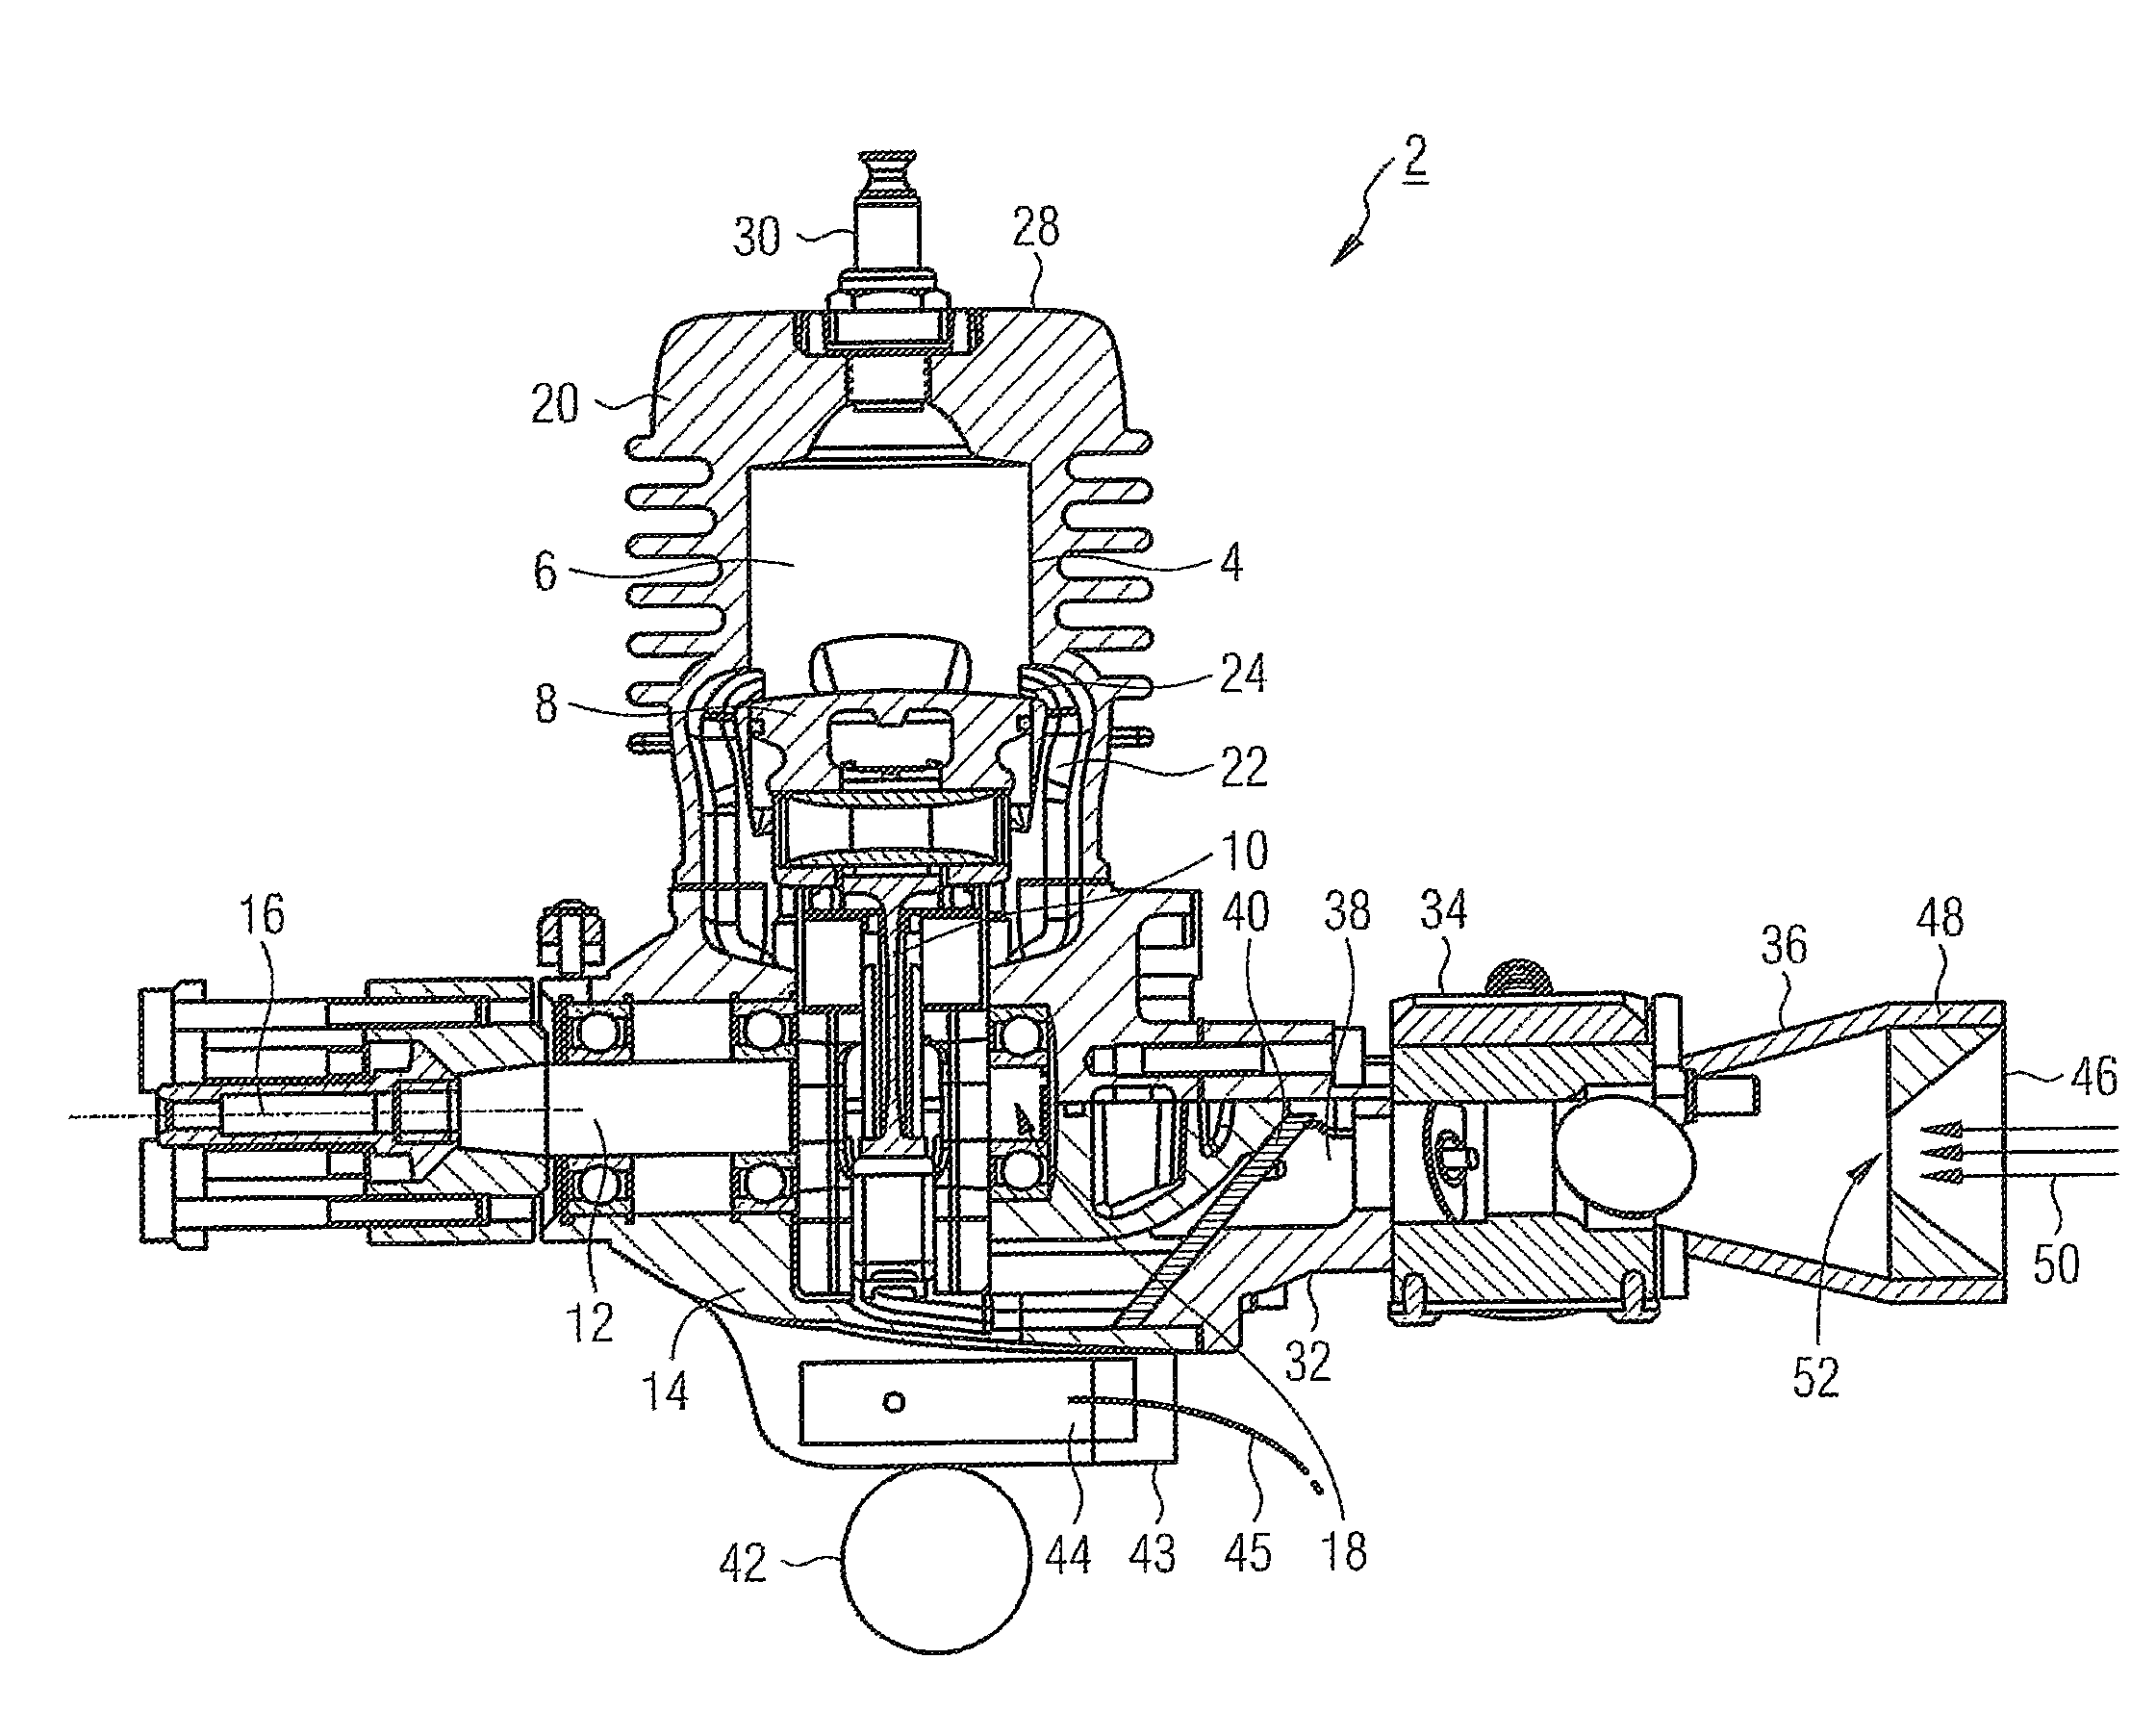 Diagram Of A Internal Combustion Engine.html